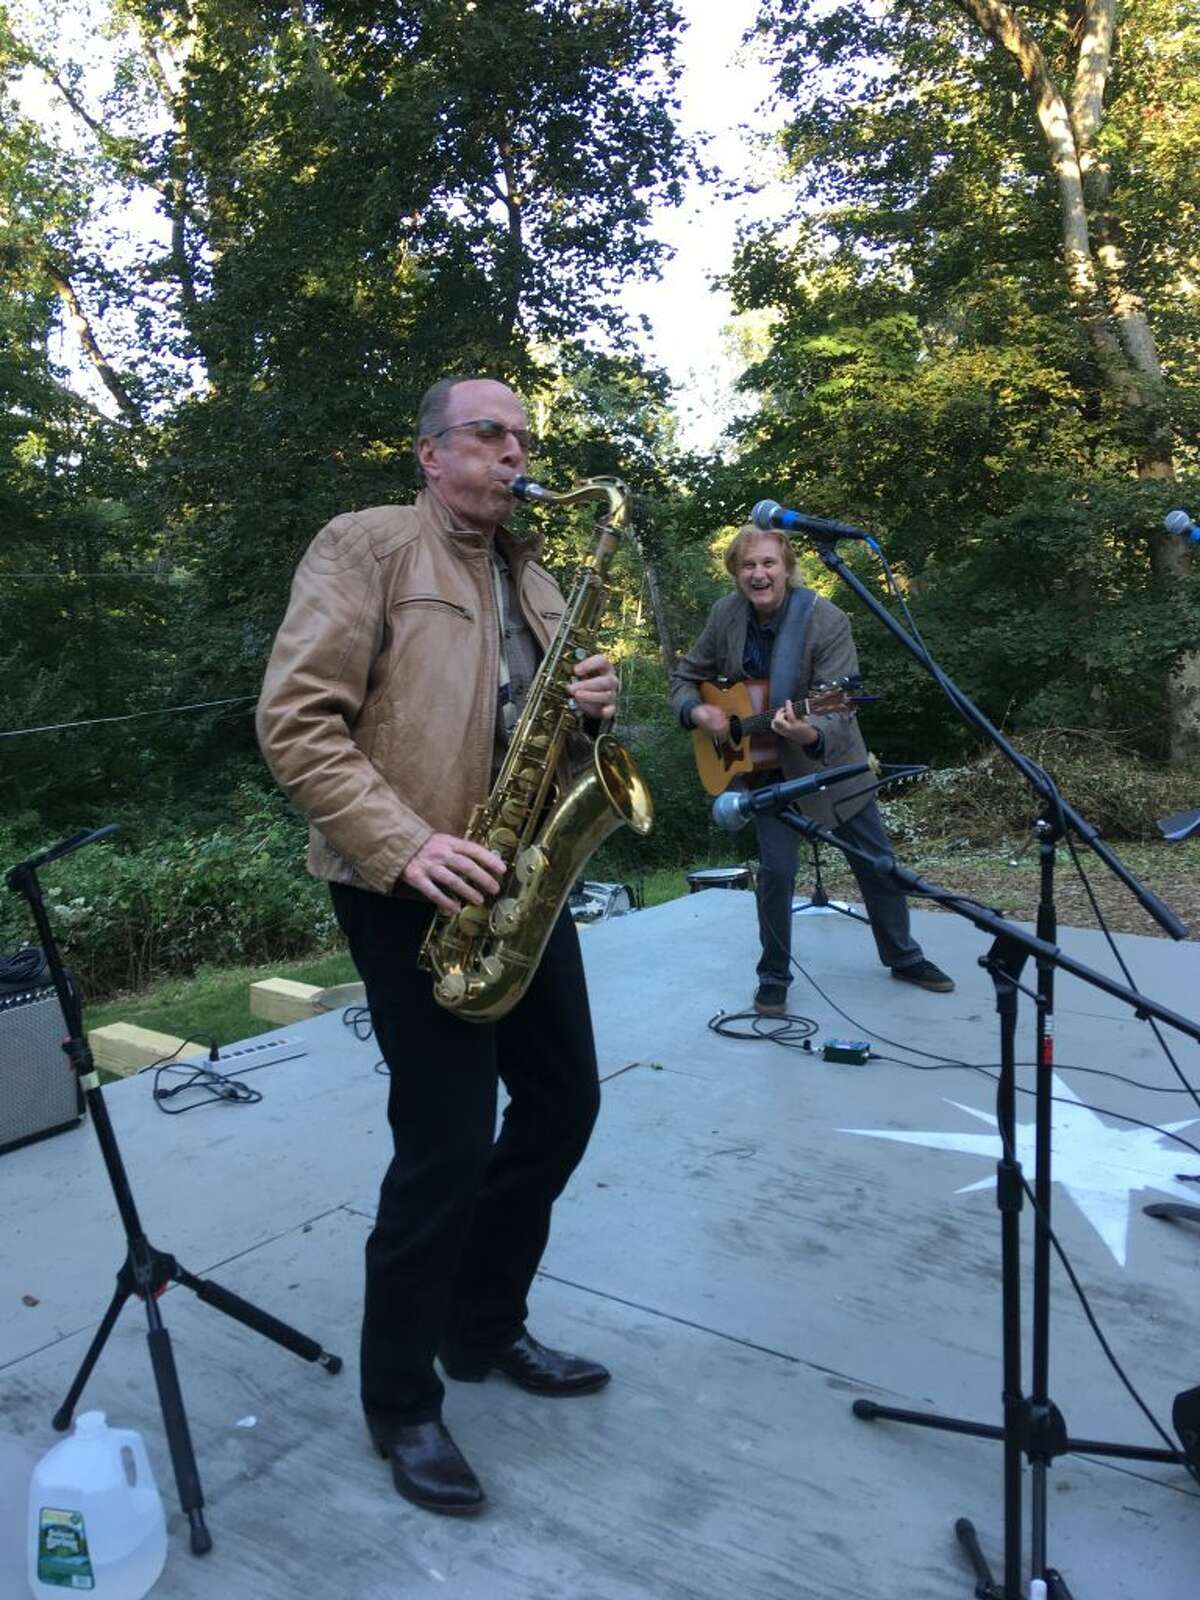 John Lissauer, record producer of Leonard Cohen's Hallelujah, takes the stage with Peter Calo at least year's Wataba Lake Festival.